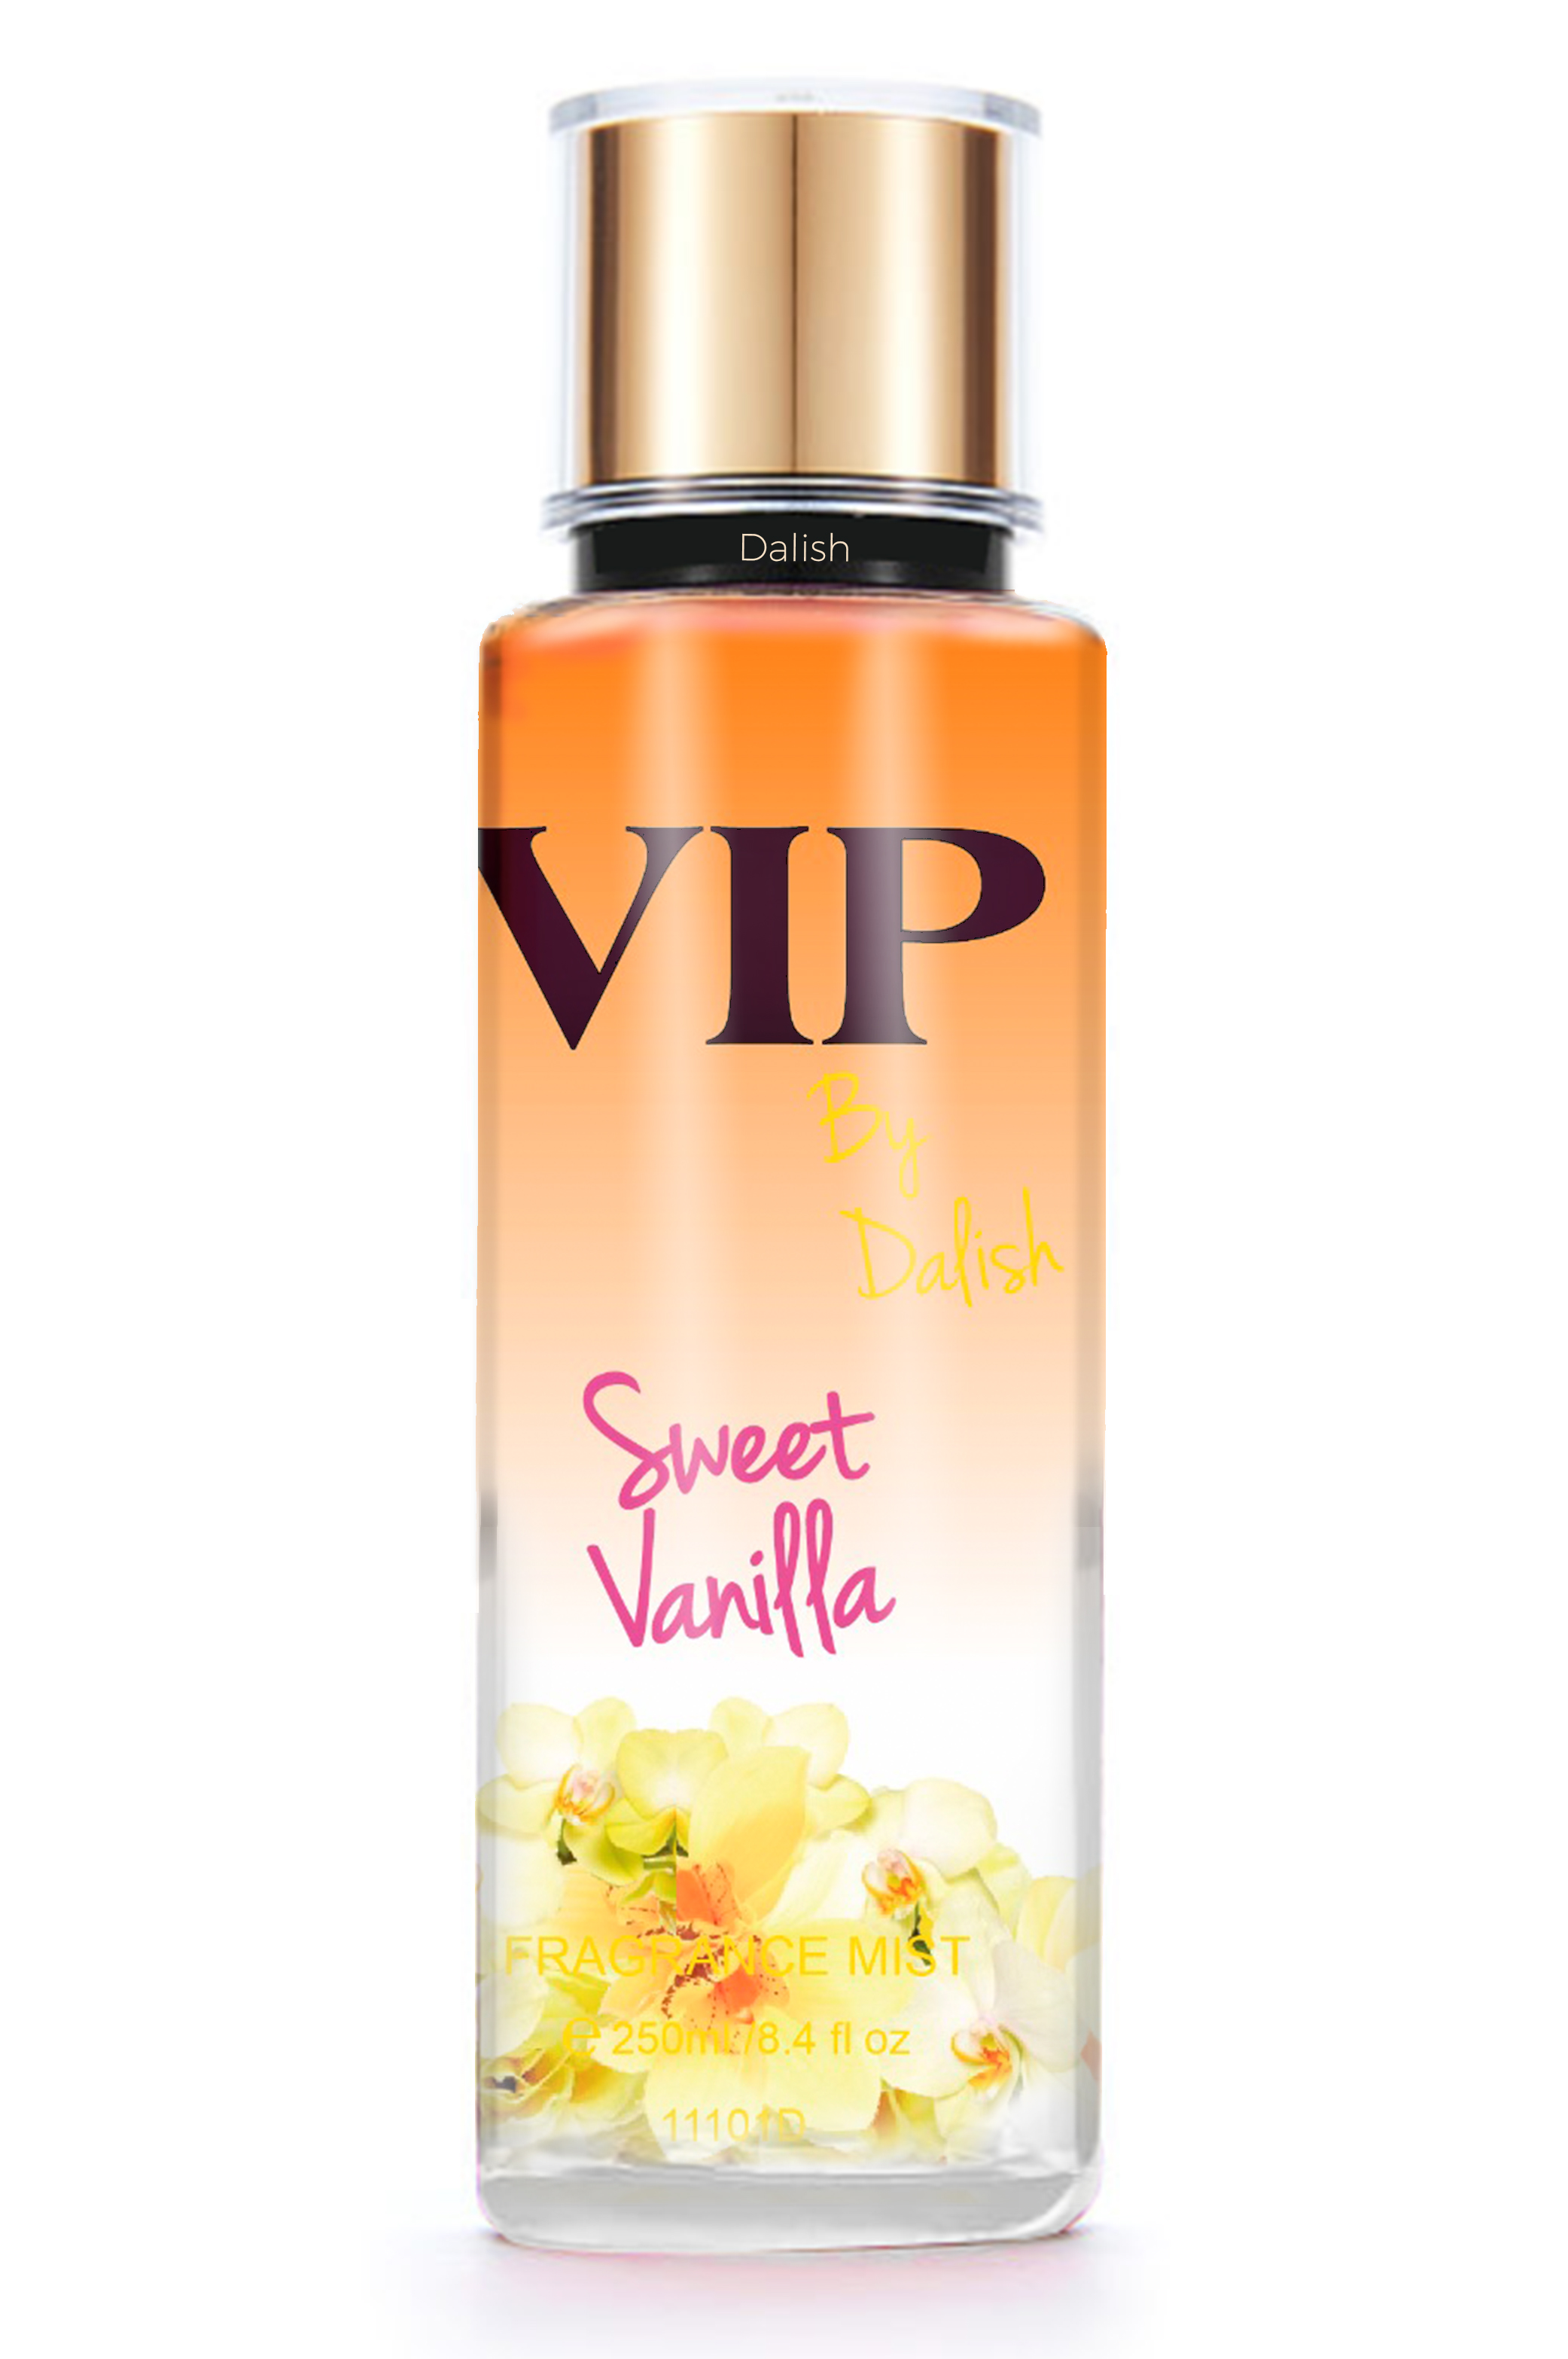 #VIP Sweet Vanilla Fragance Mist 250 ML